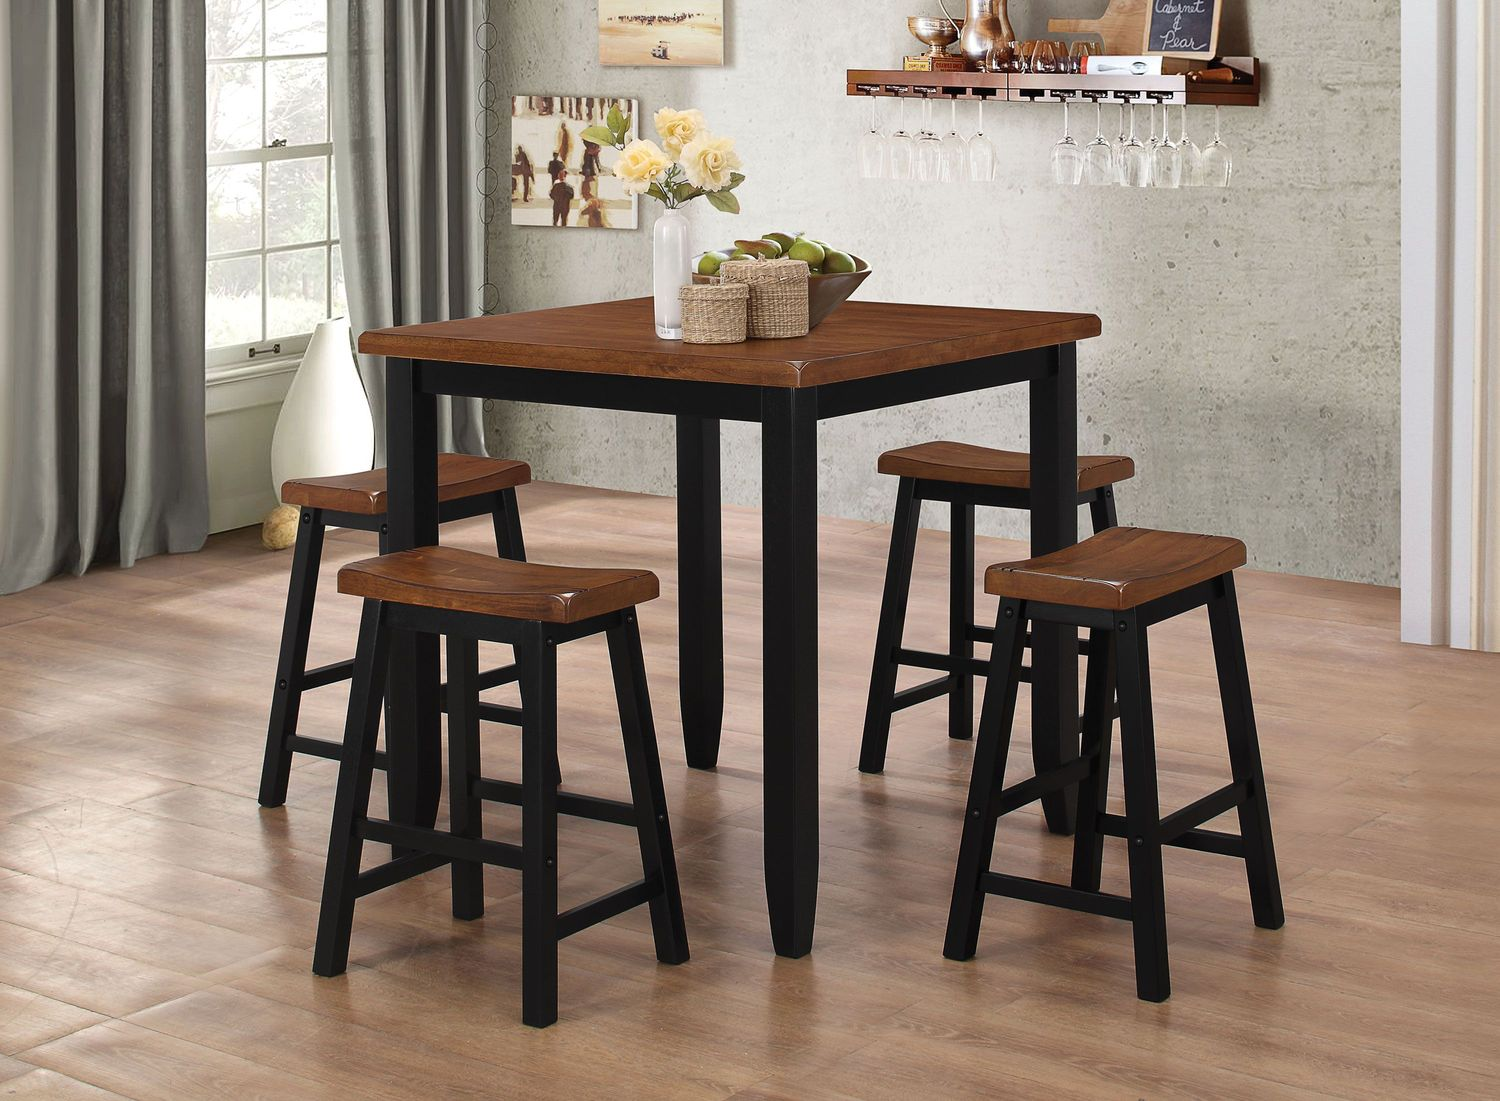 Emmerdale Counter-Height Table and 4 Stools